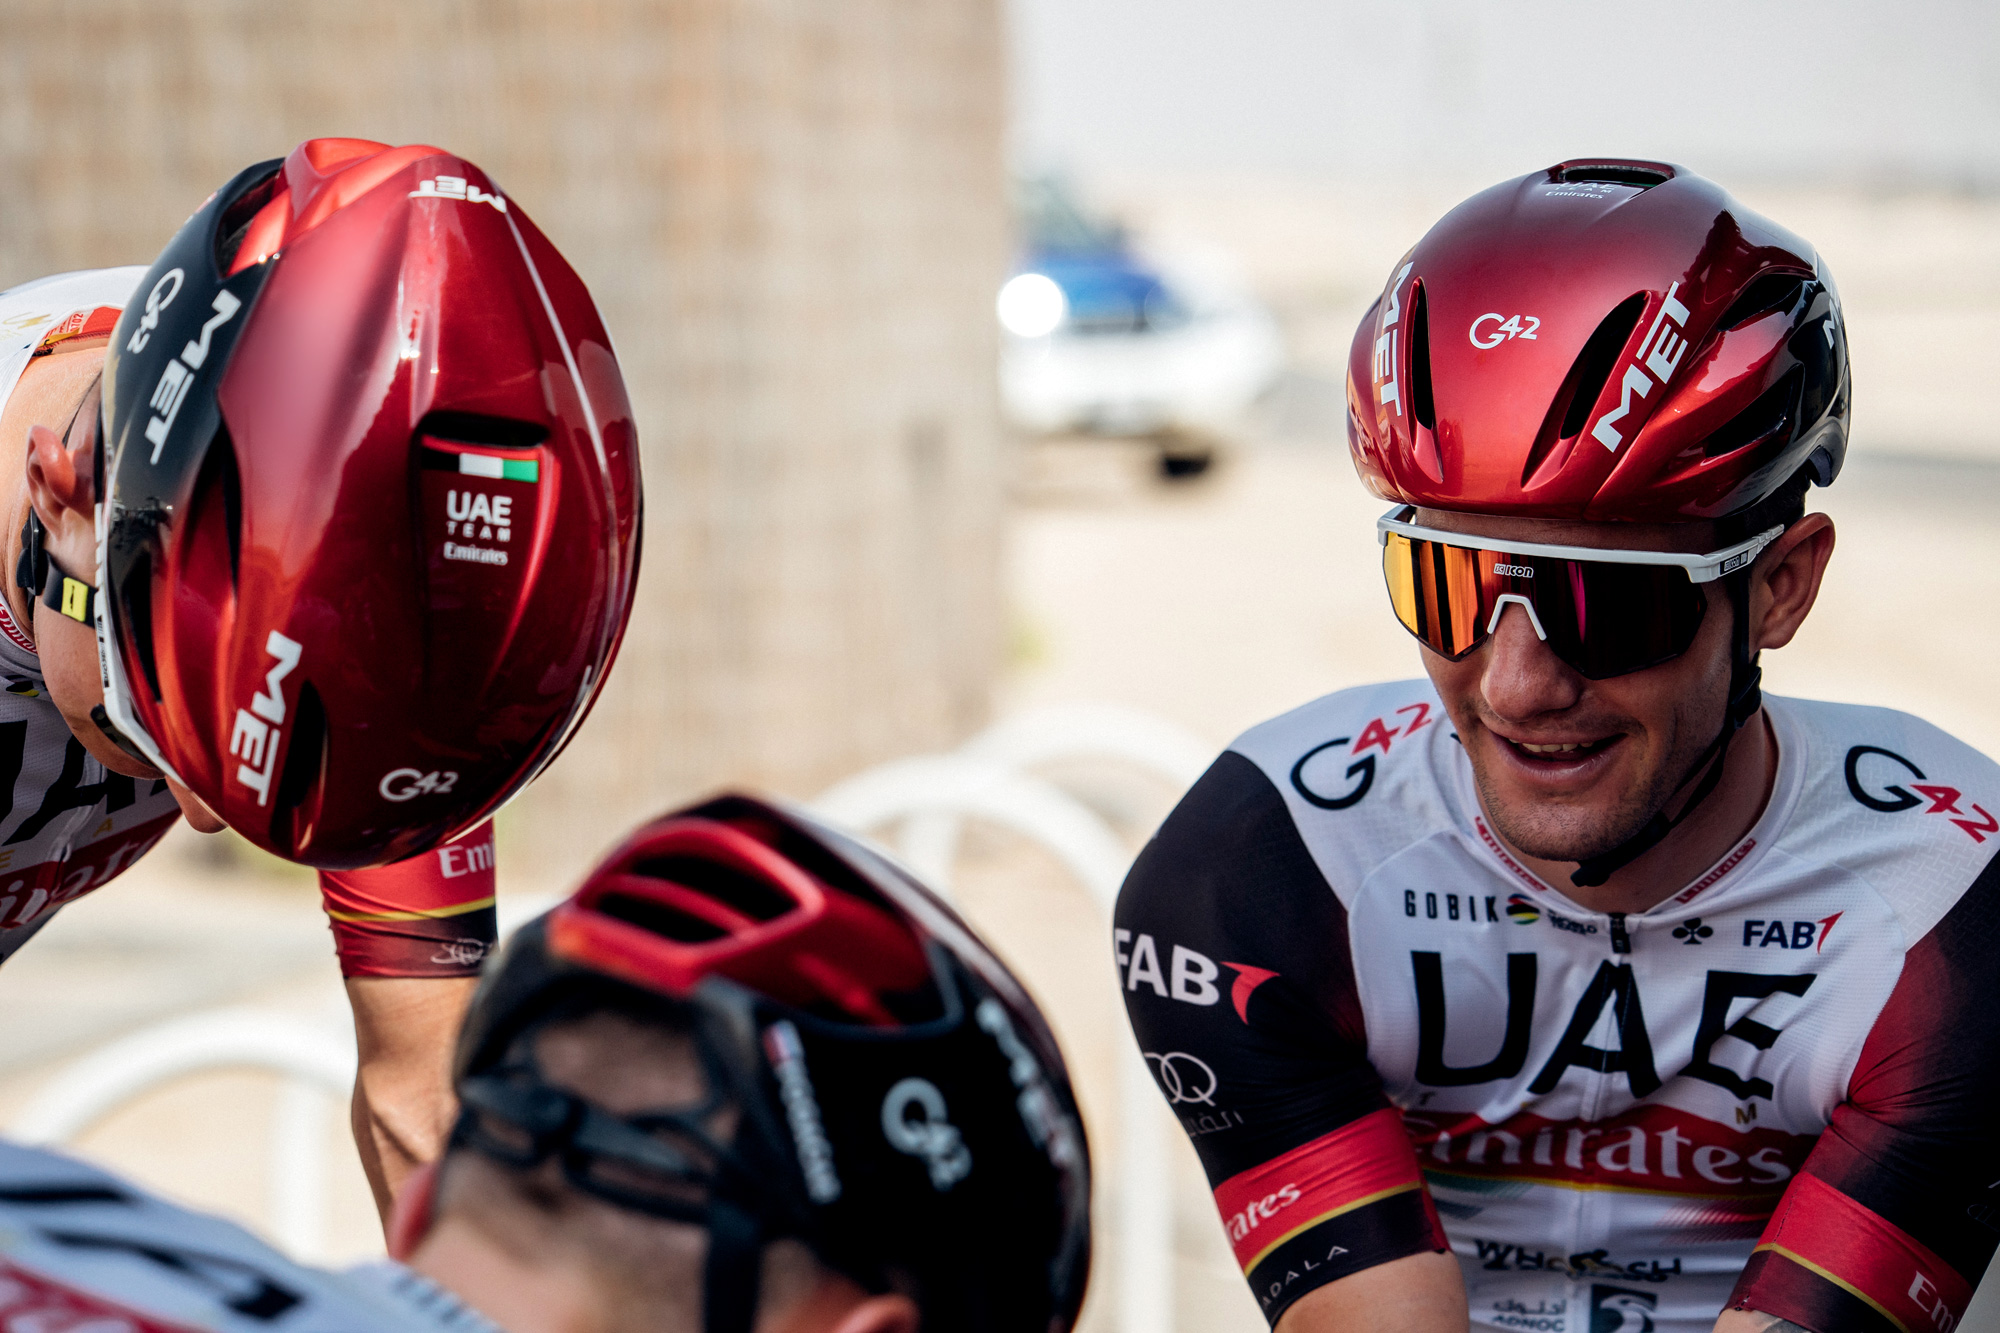 MET Manta Mips Road, Triathlon and Winter Rides Helmet: UAE Team Emirates